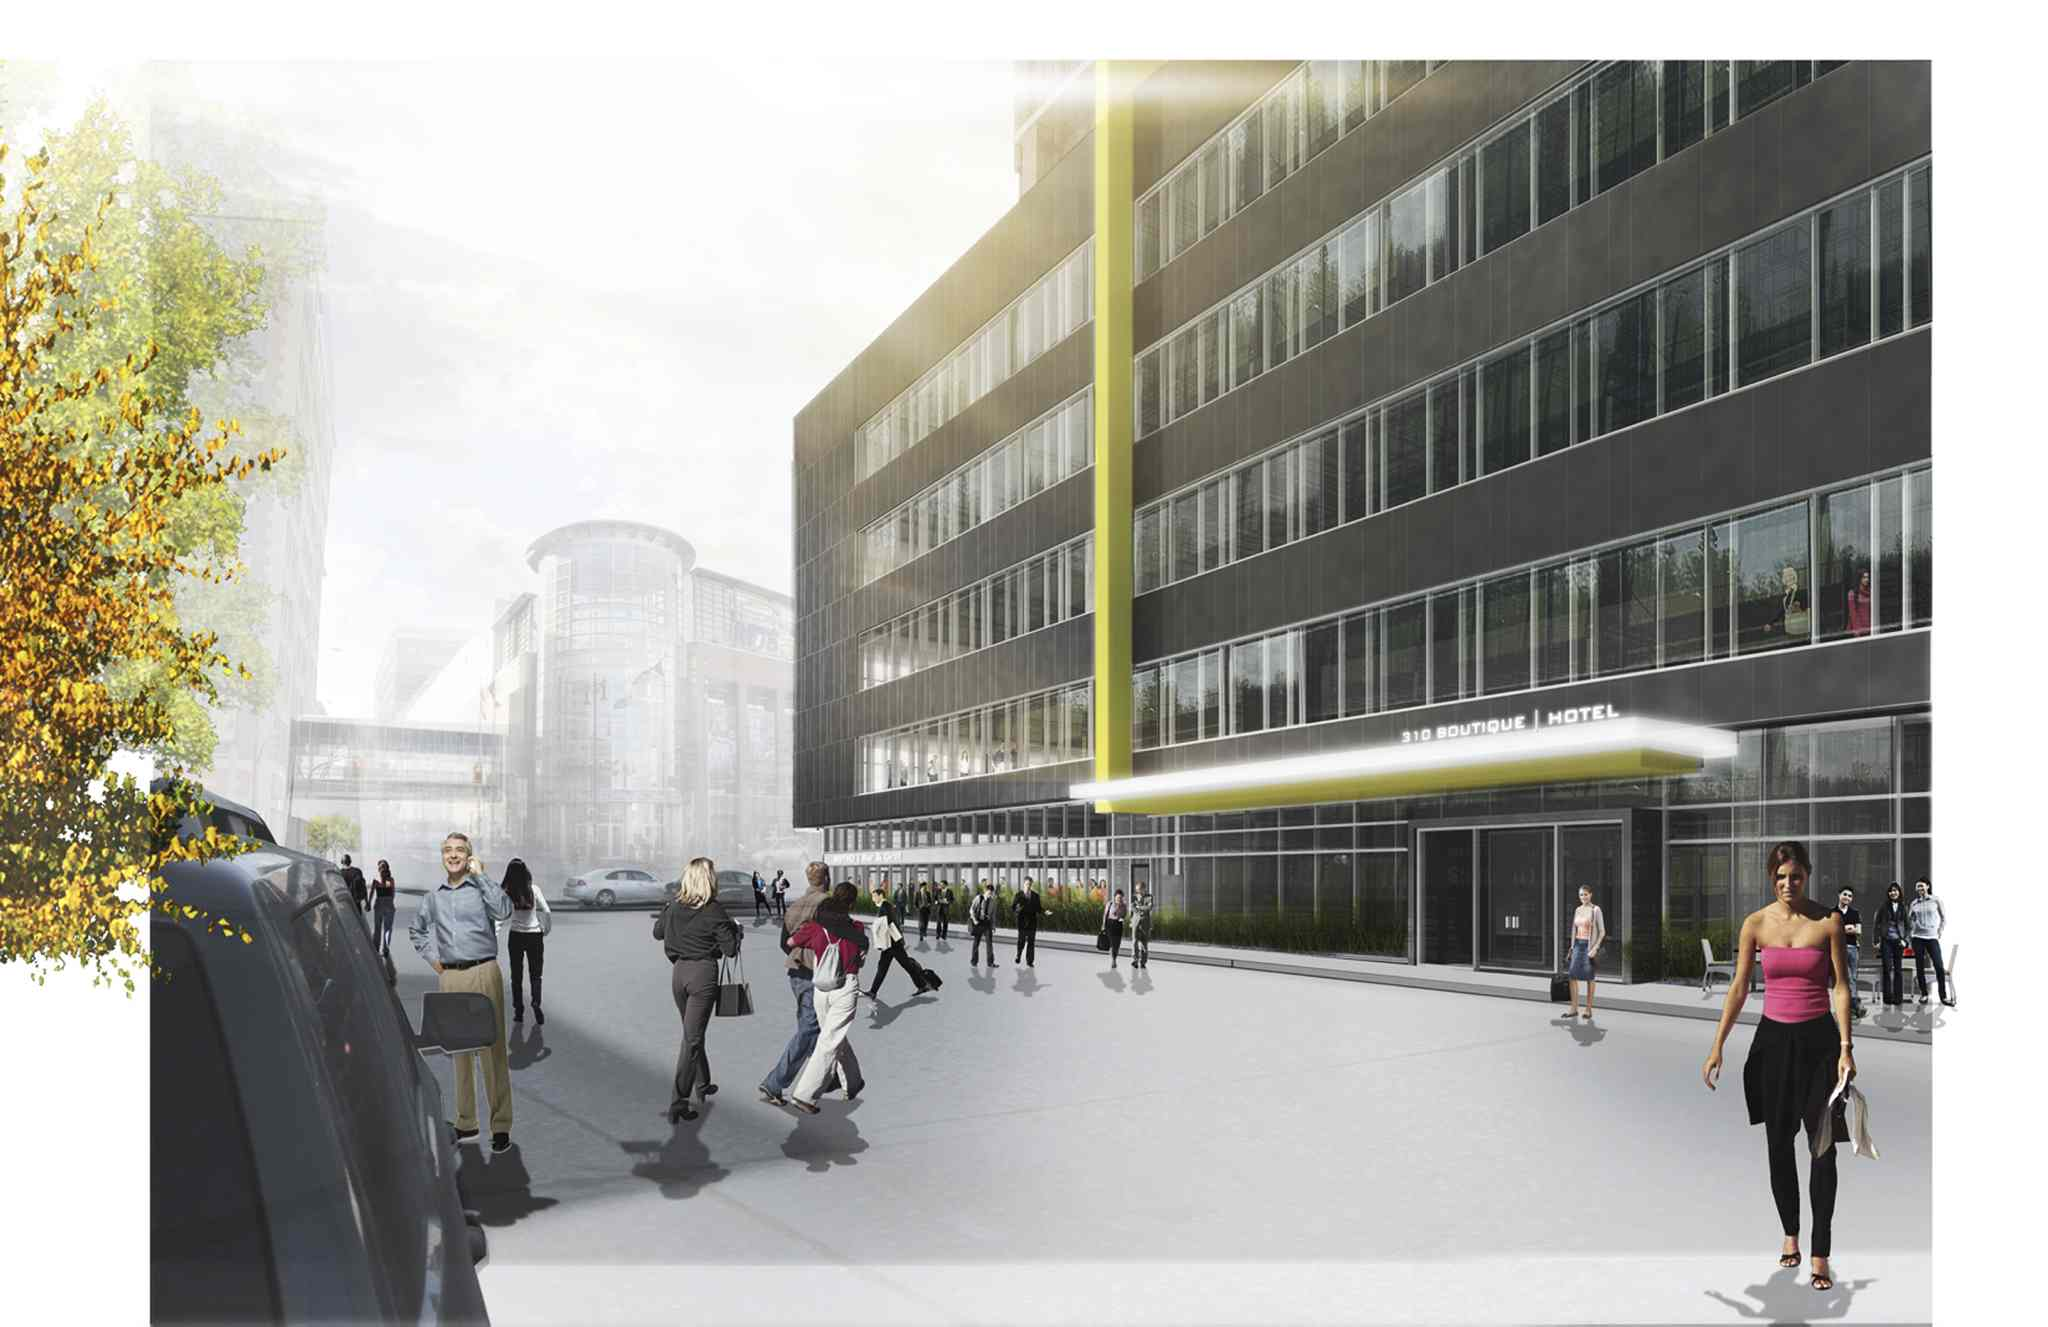 An artist's streetscape rendering of the Centrepoint development under construction at the northwest corner of Portage Avenue and Donald Street.